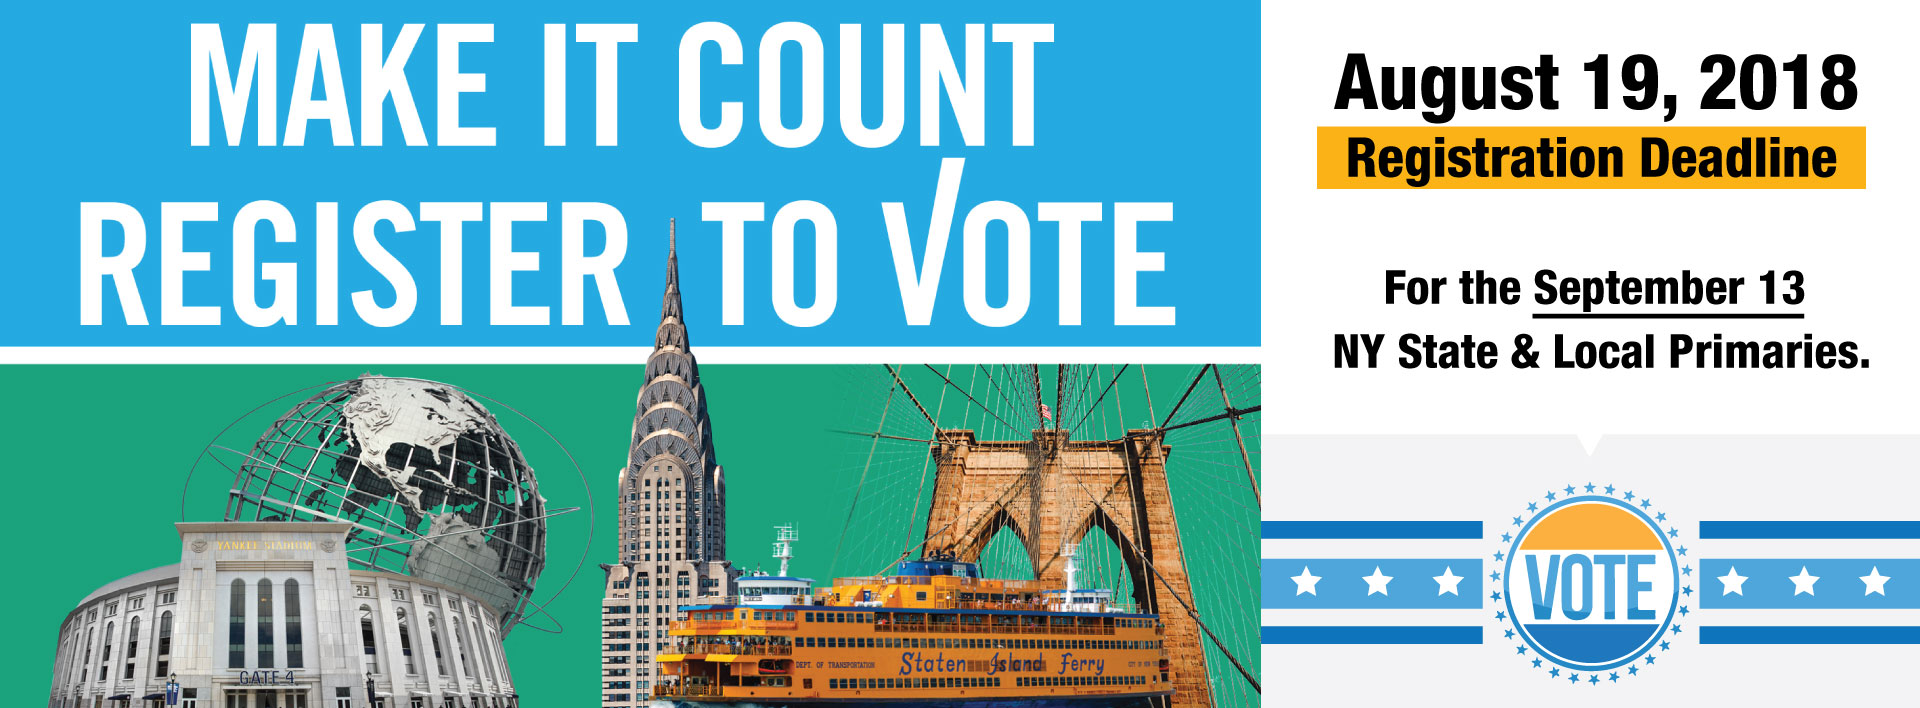 Make It Count - Register to Vote . August 19, 2018 registration deadline for the September 13 NY state and local primaries